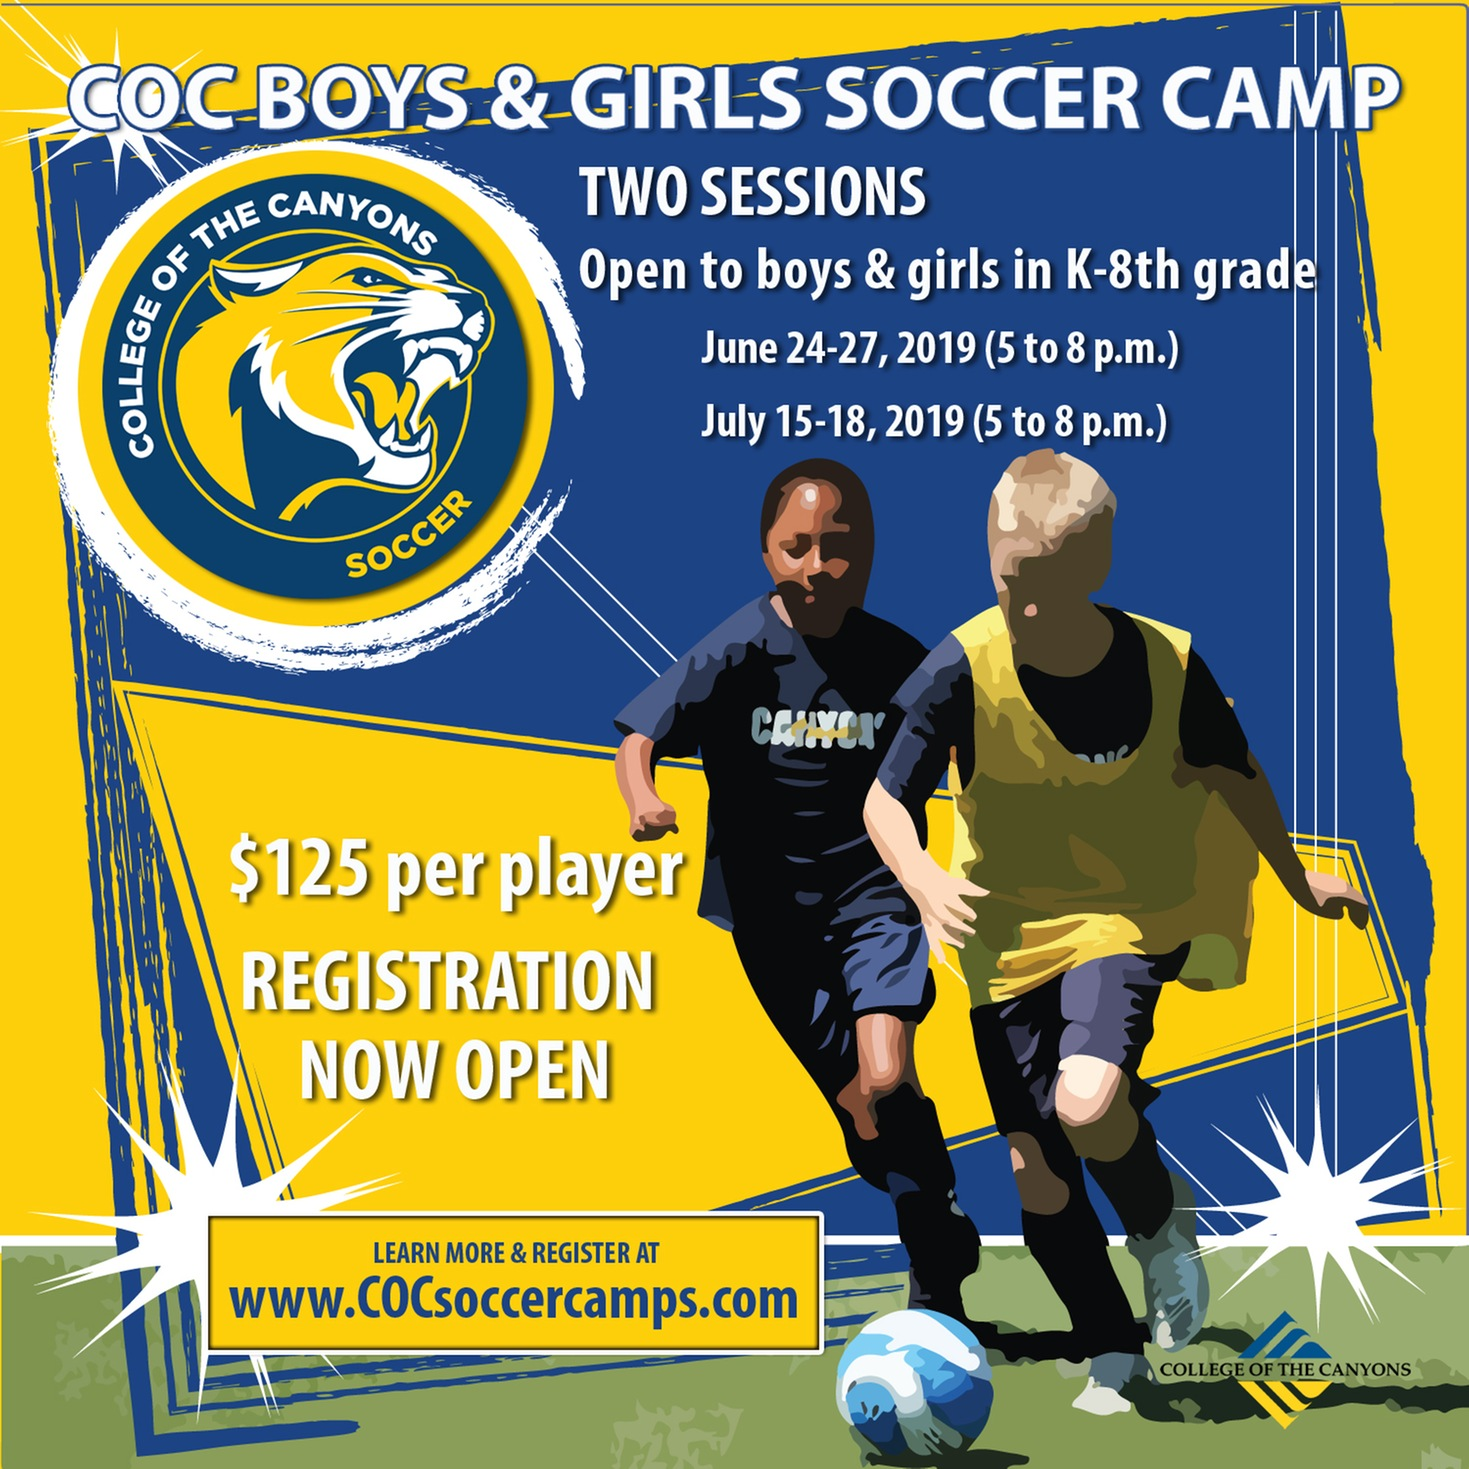 COC soccer camp promotional graphic.